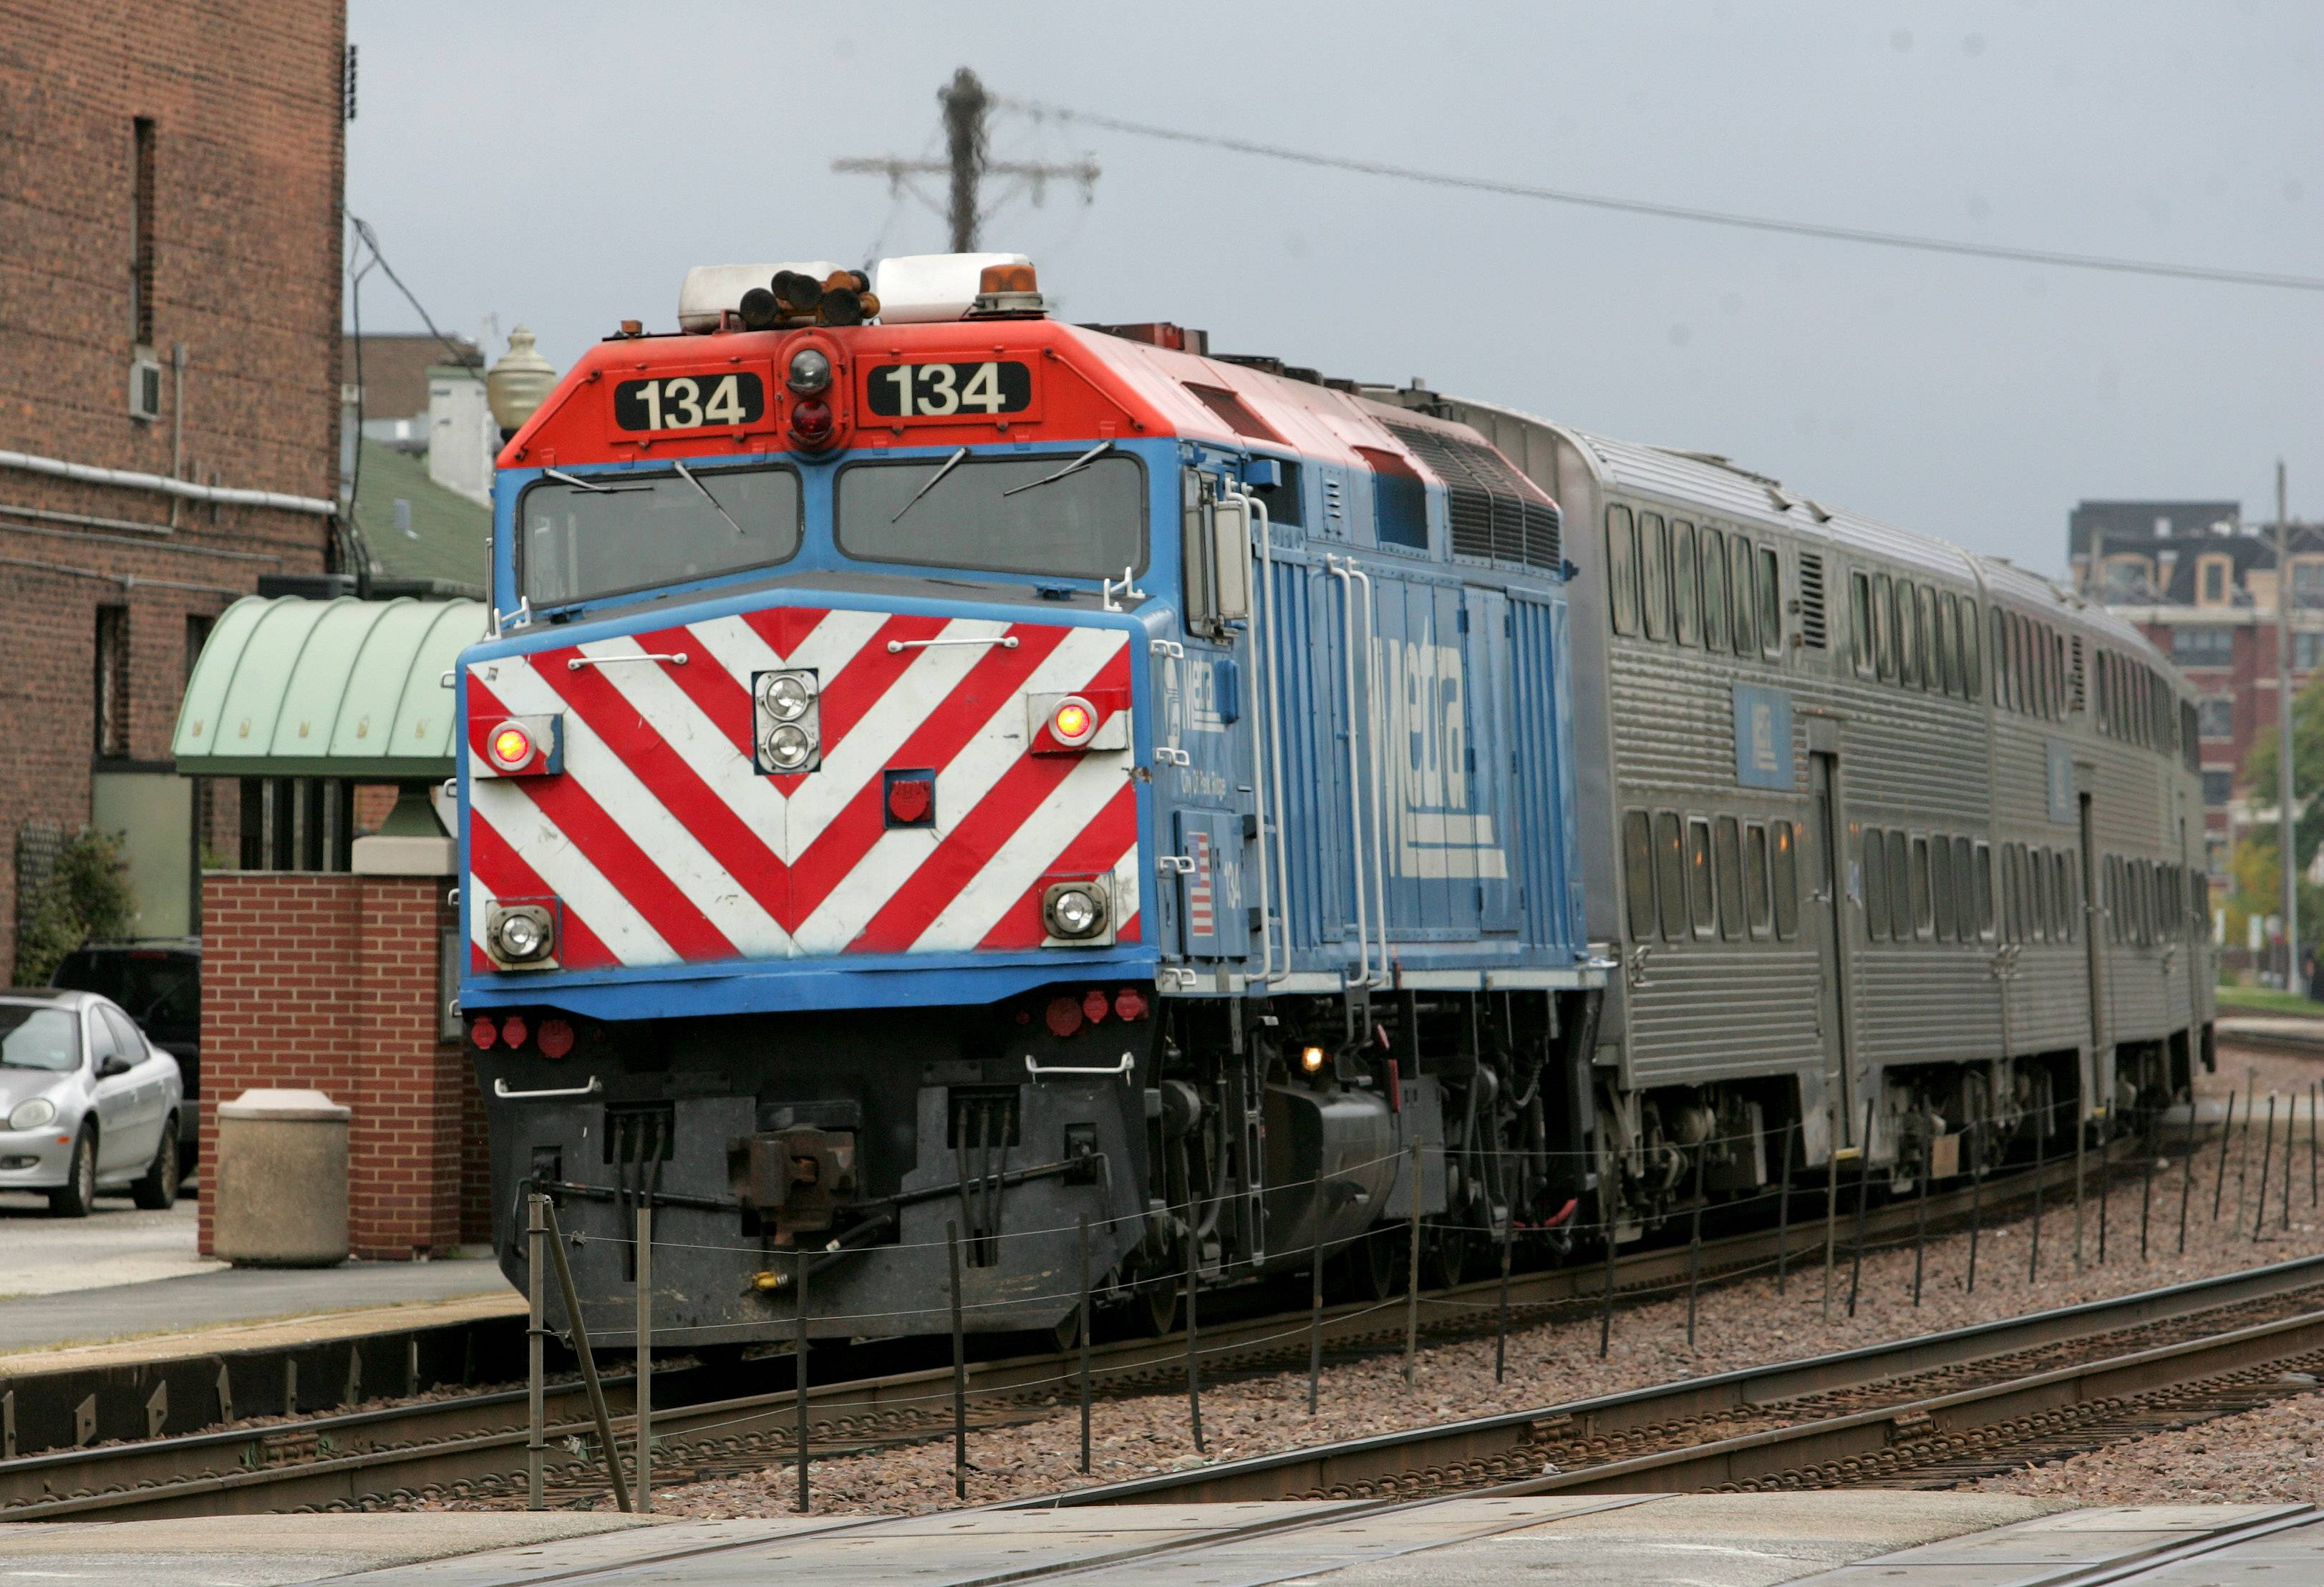 Metra restores full service this morning on BNSF line